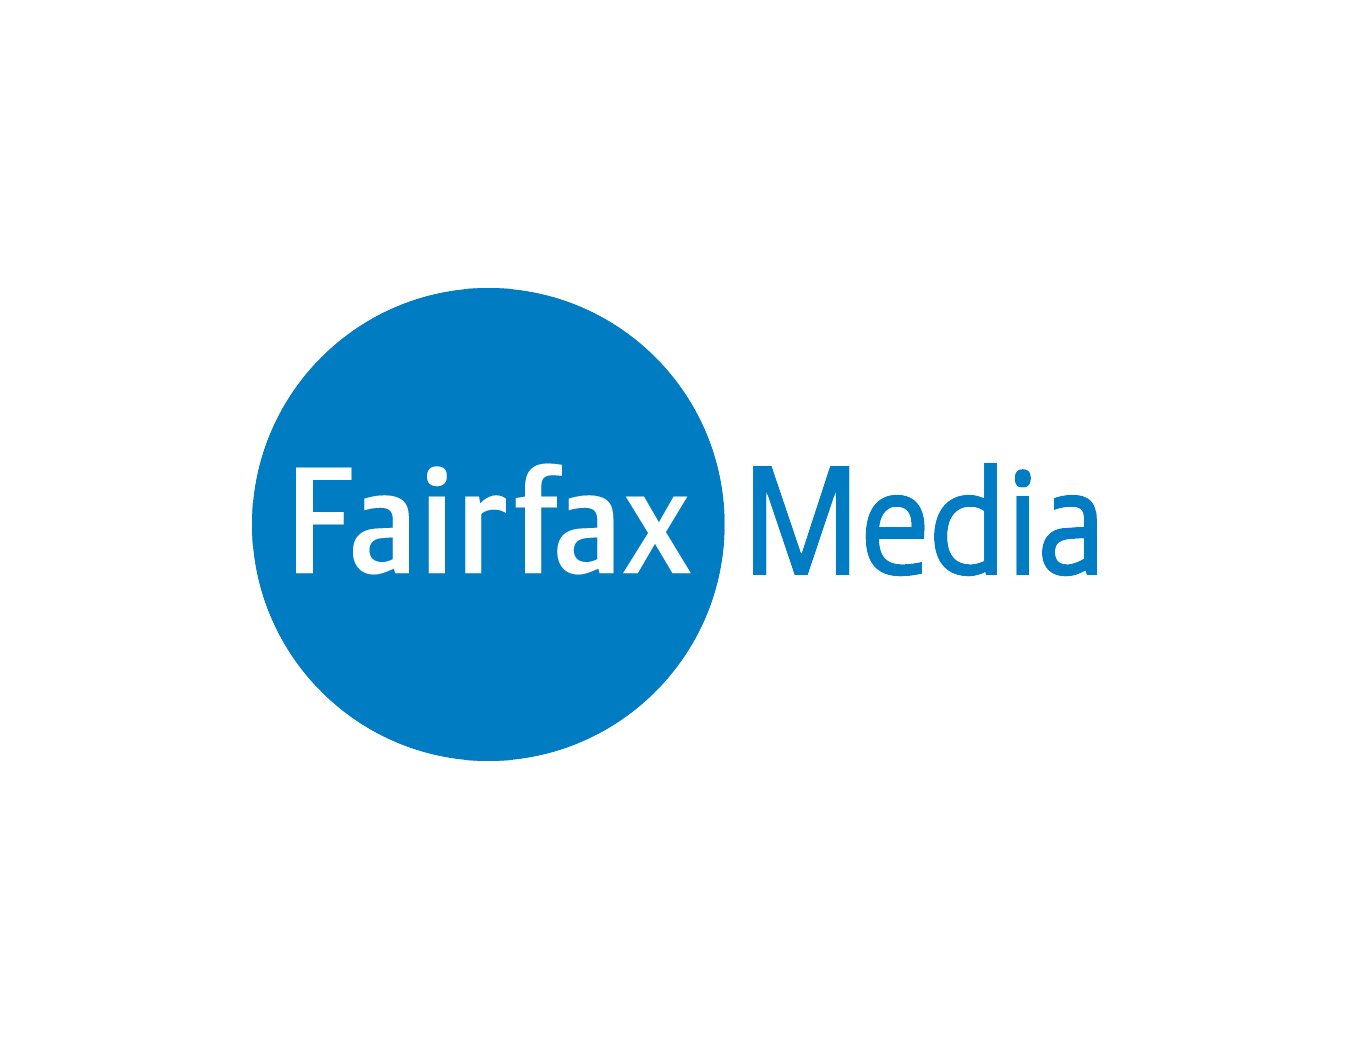 FairfaxMedia.png